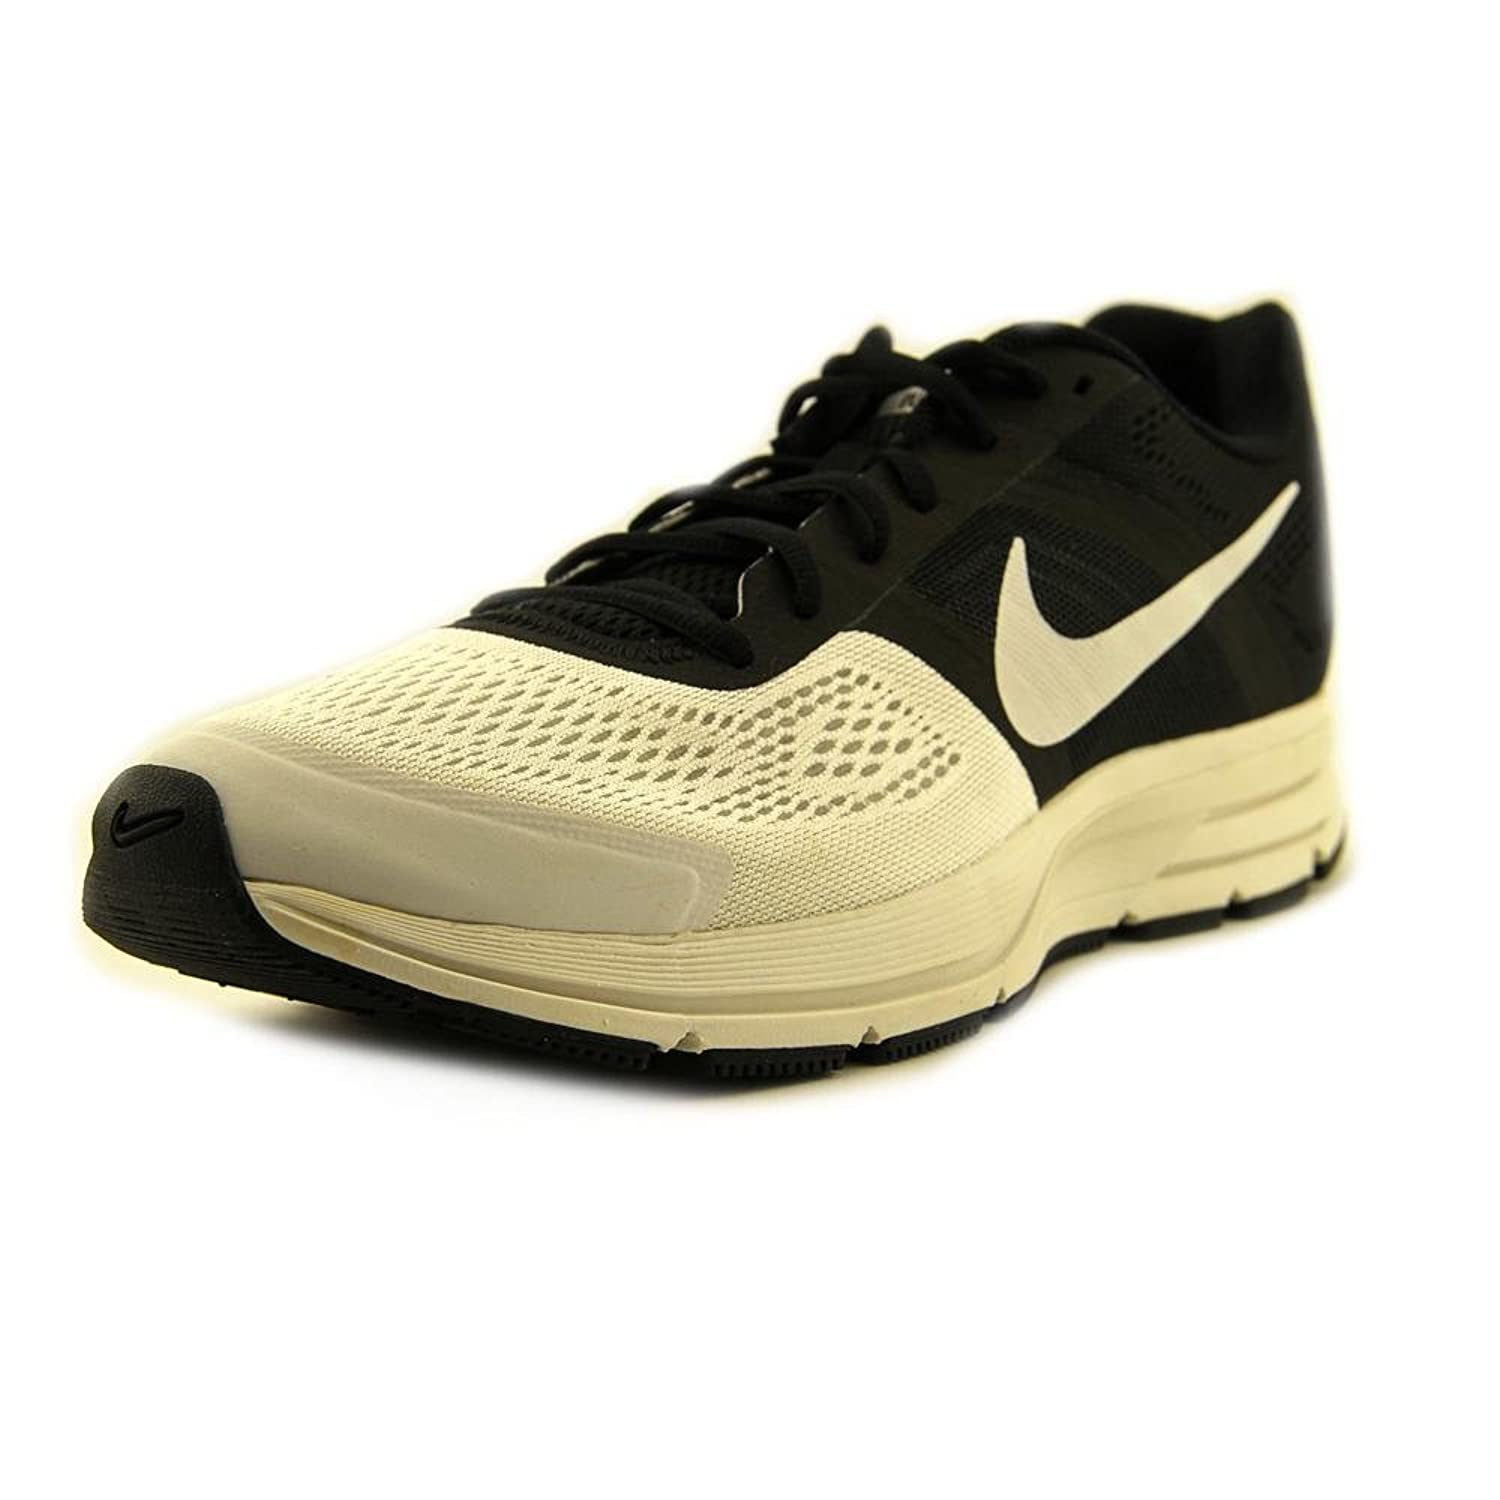 adidas running shoes for men amazon nike shoes for girls black and white design